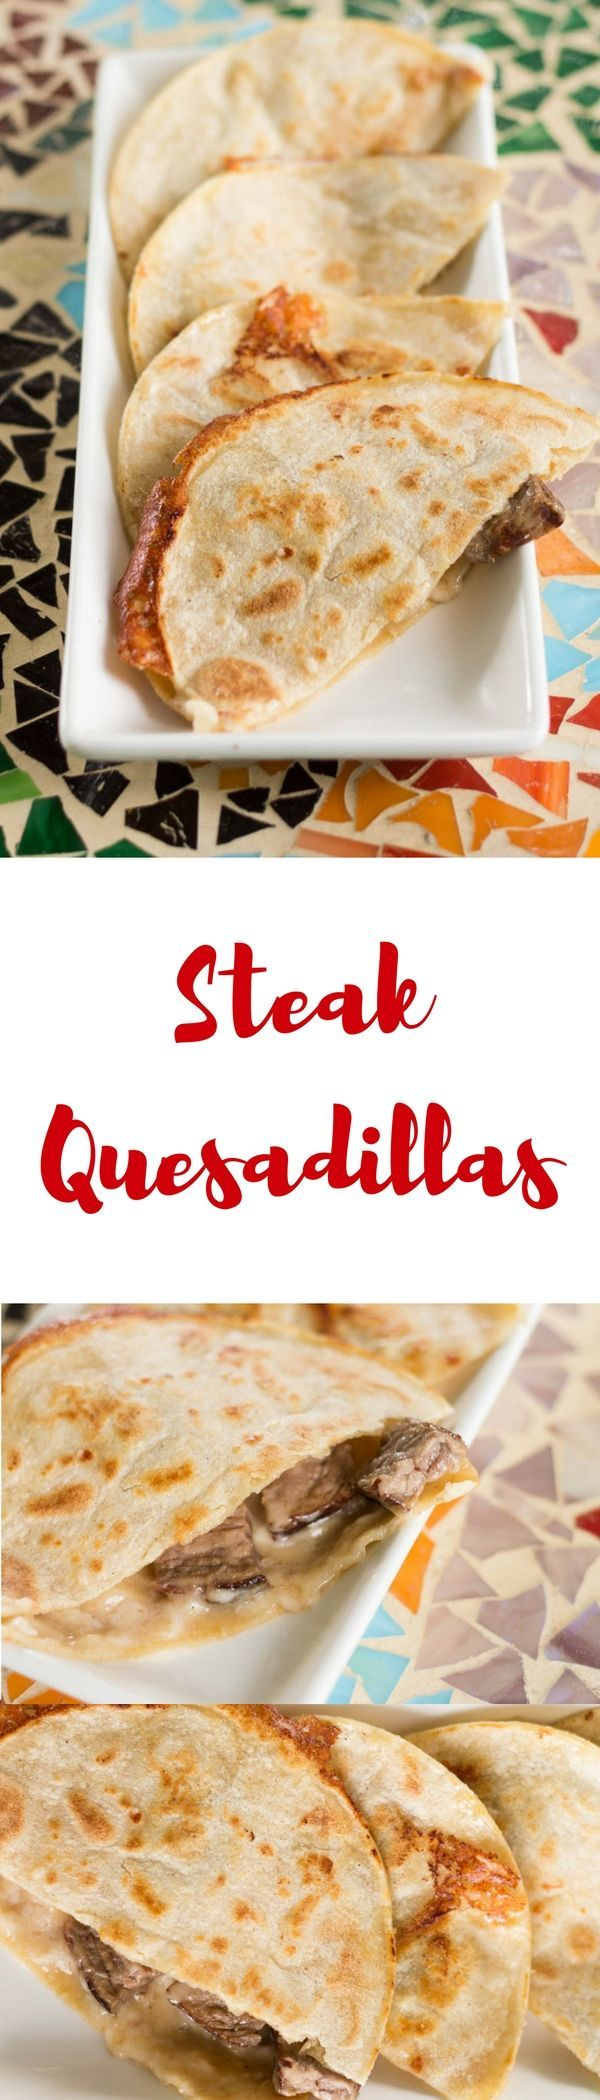 If you've never used corn tortillas to make steak quesadillas, you're in for a treat! This steak quesadilla recipe is super easy and so delicious. #AuthenticSalsaStyle #ad /HerdezBrand/ /walmart/